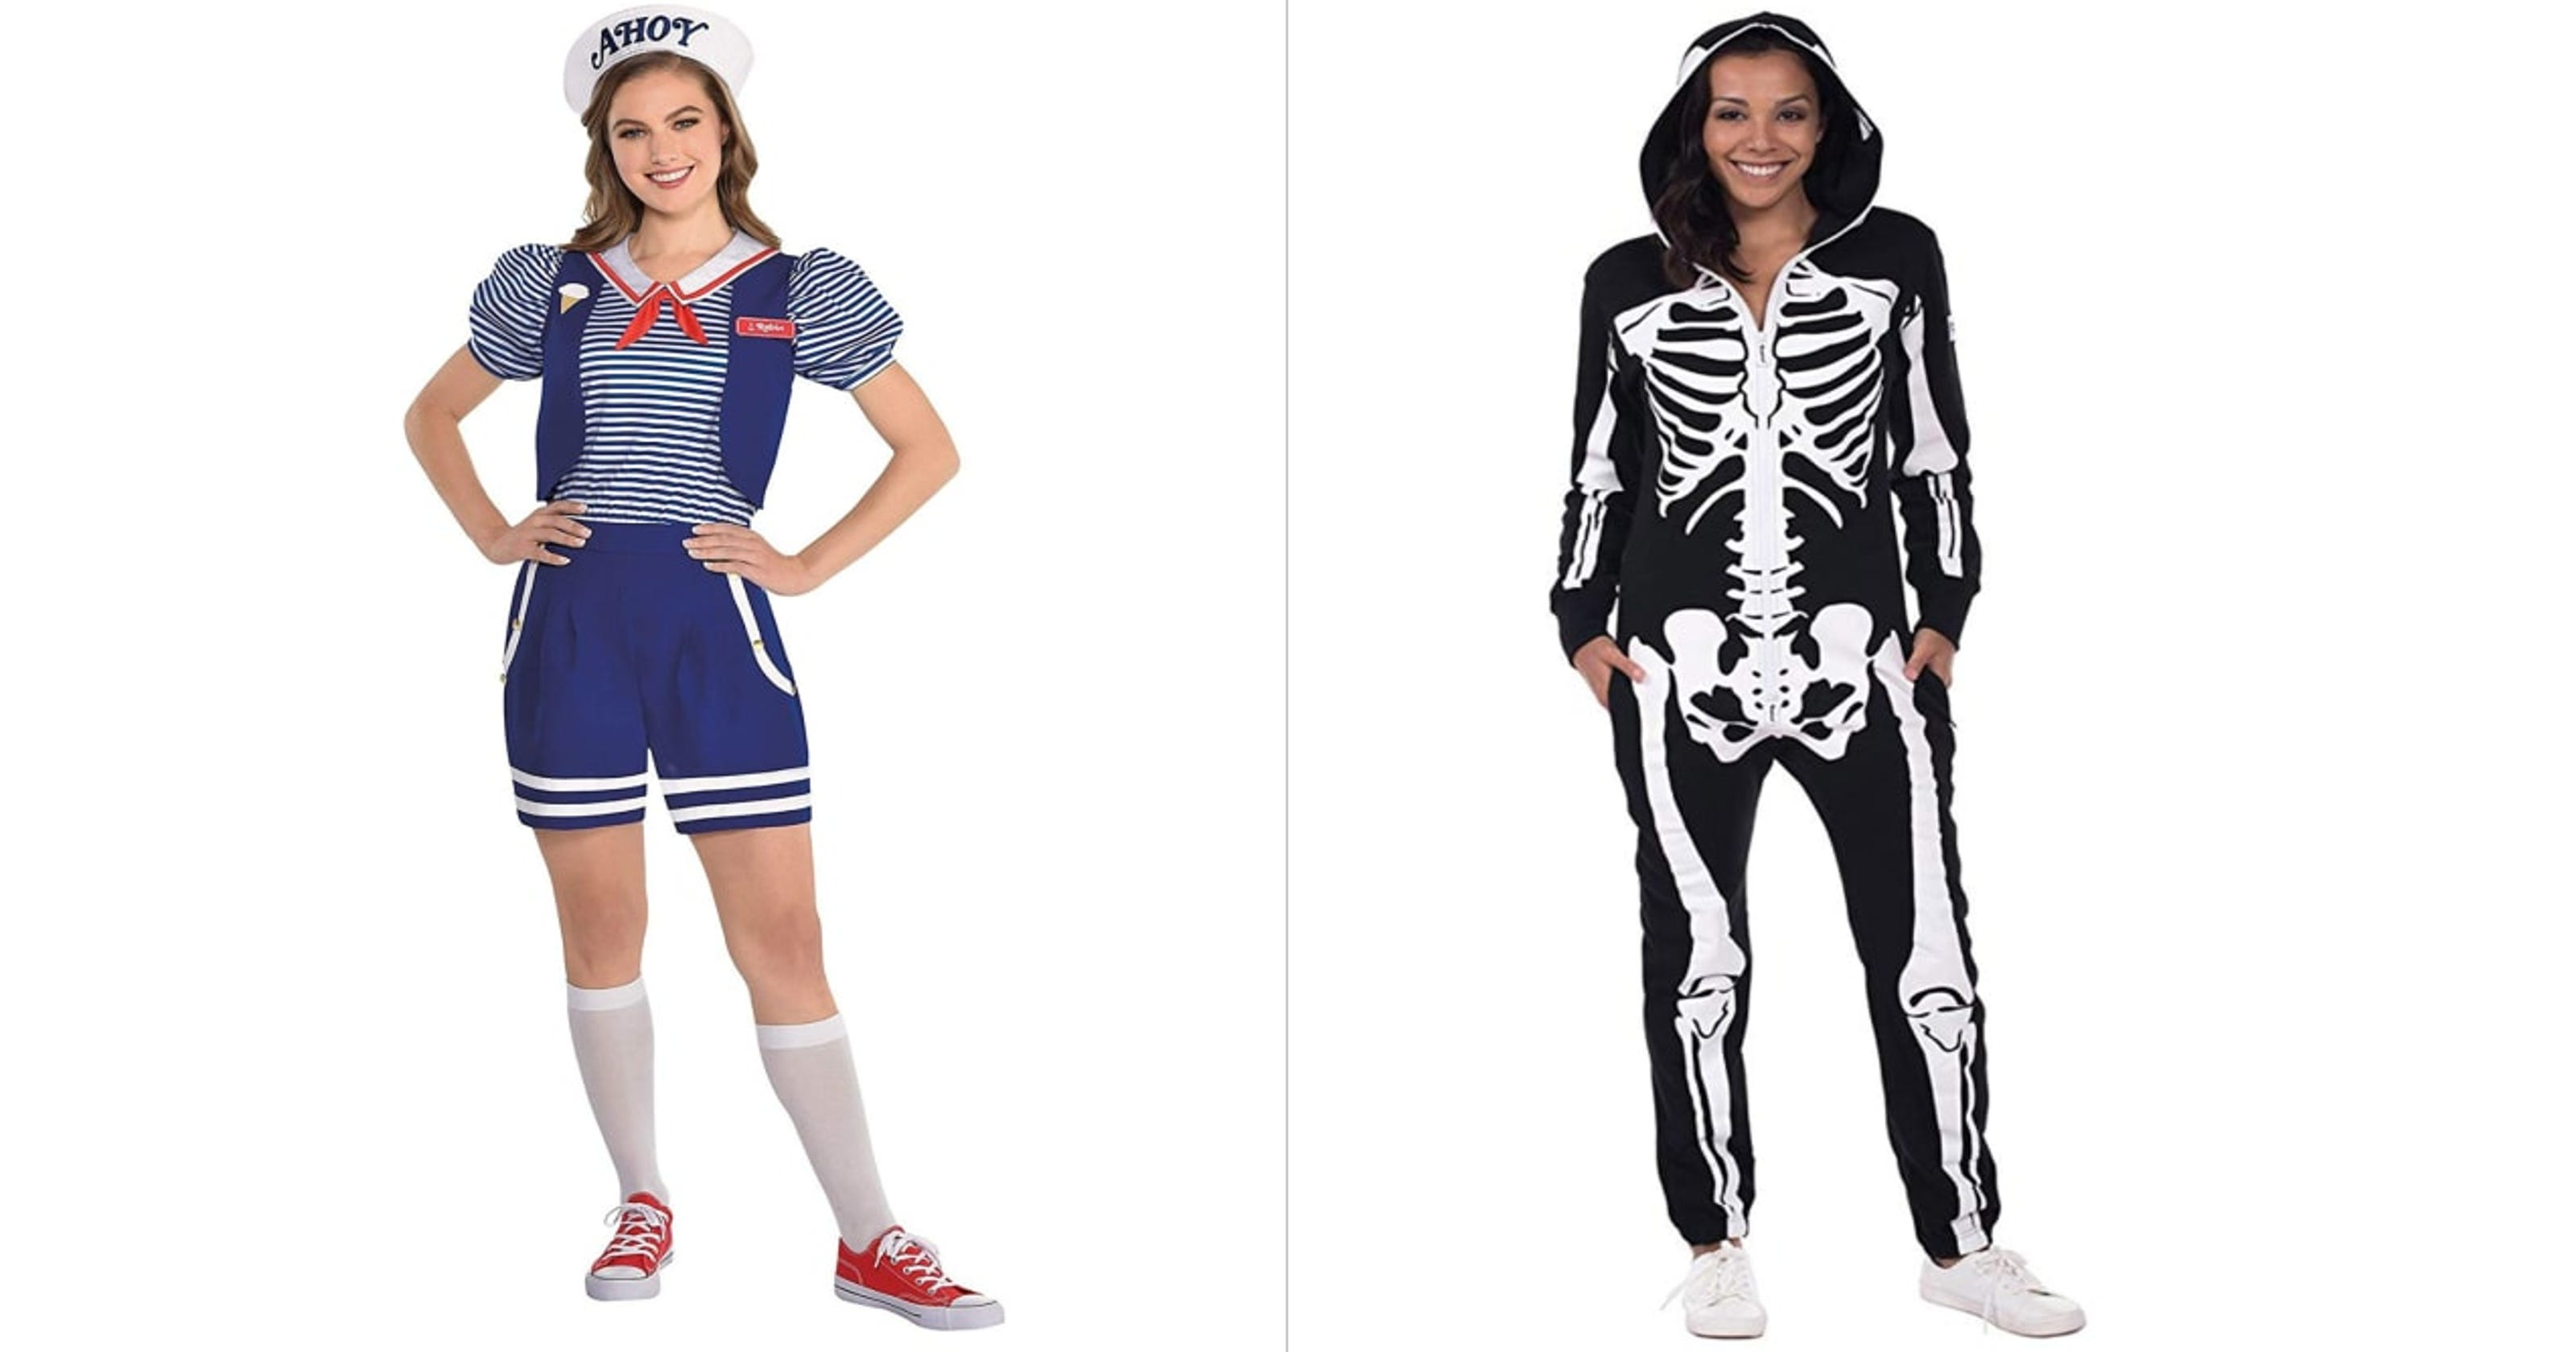 18 cute G-rated Halloween costumes for women